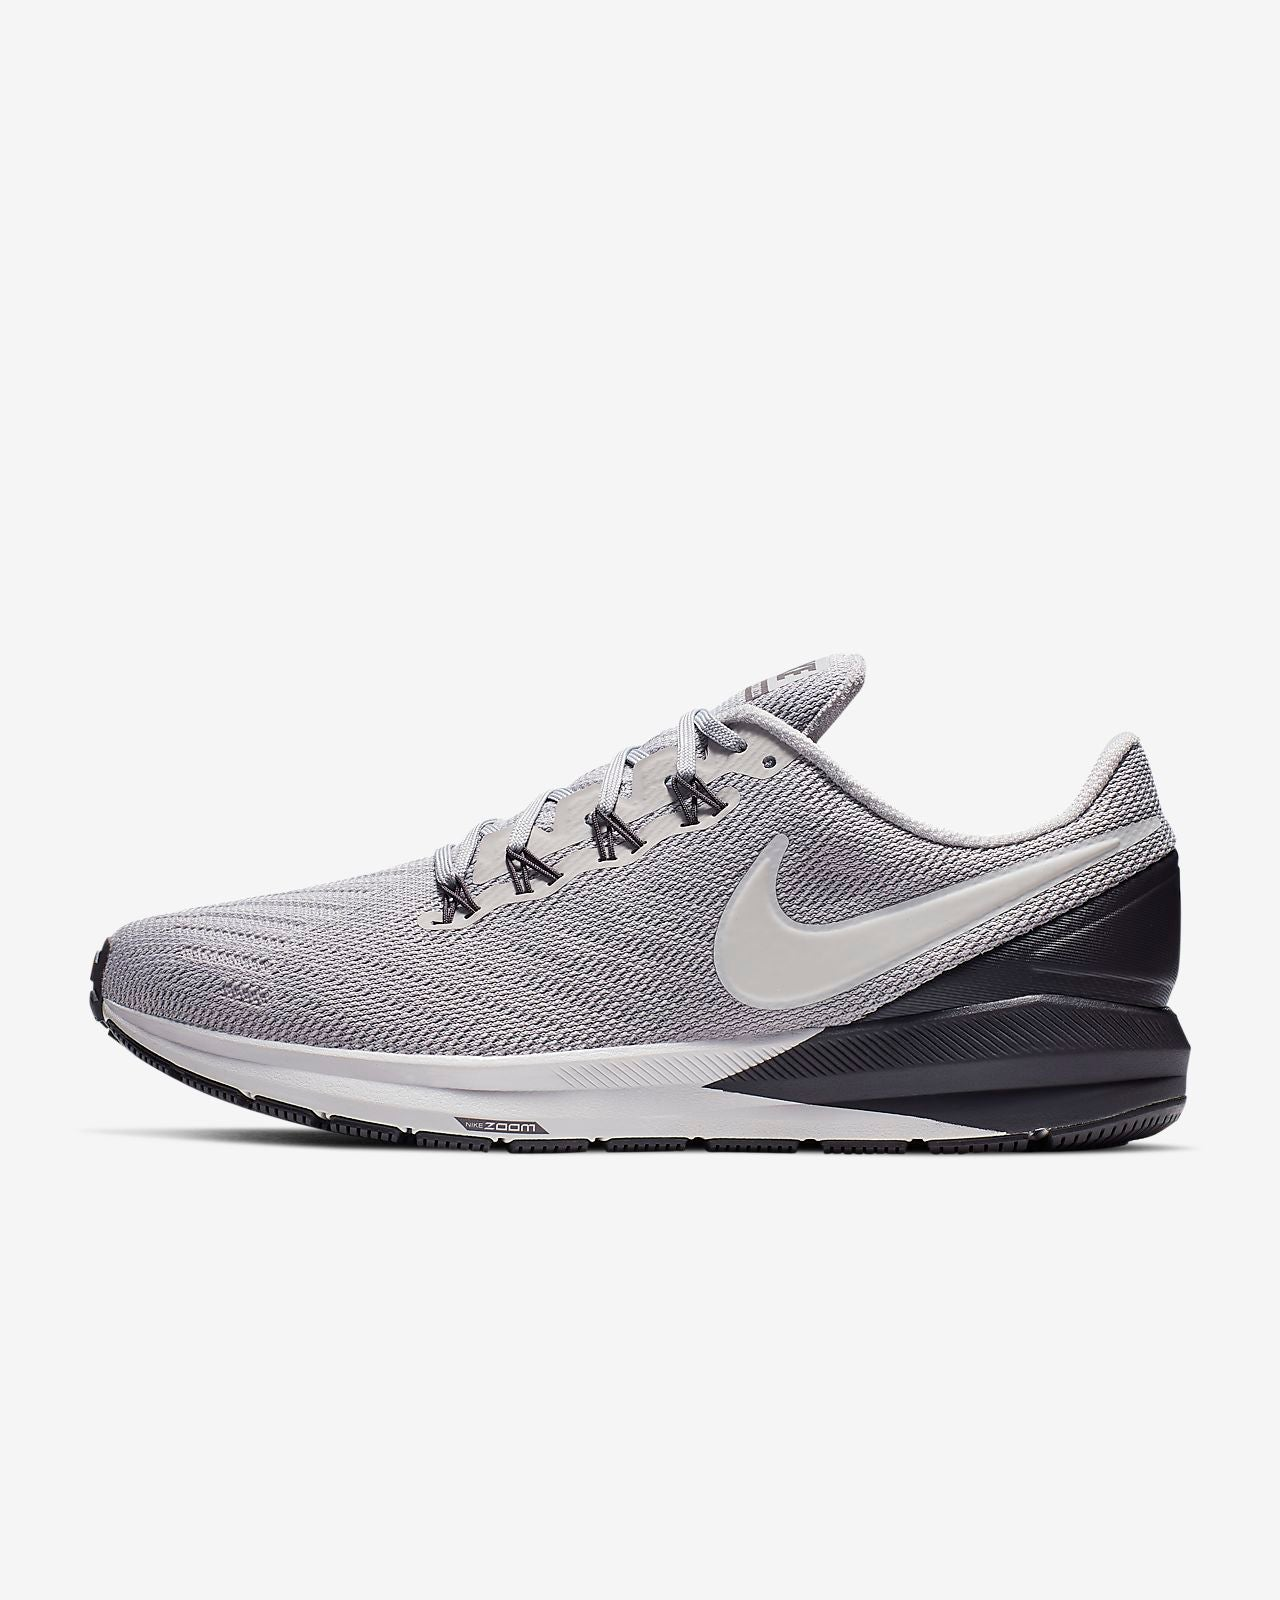 outlet store 5072d 1904d Nike Air Zoom Structure 22 Men's Running Shoe AA1636-006